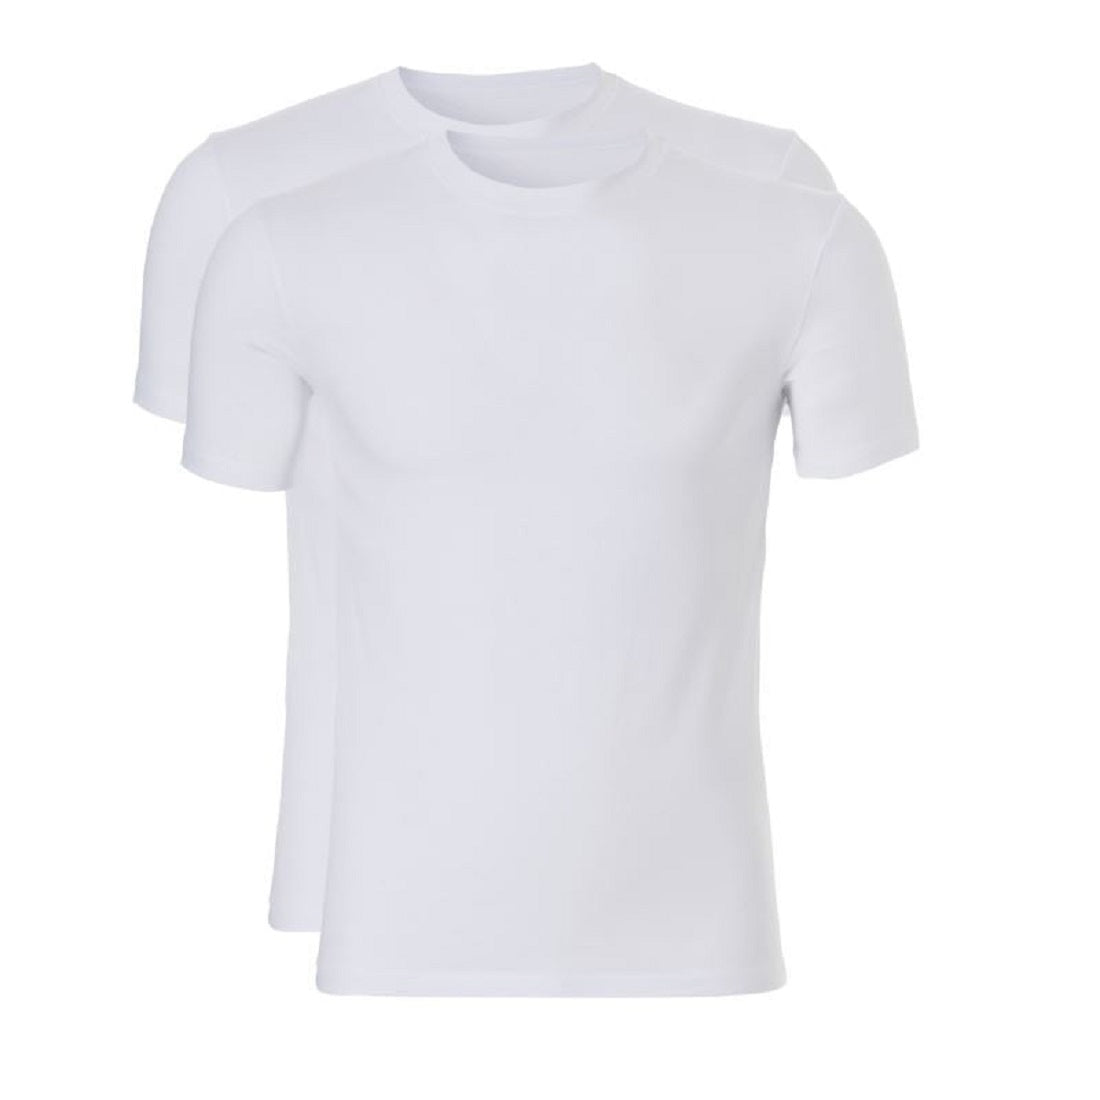 30227 Ten Cate Fine T-shirt 2-pack - wit - 30227-001-white